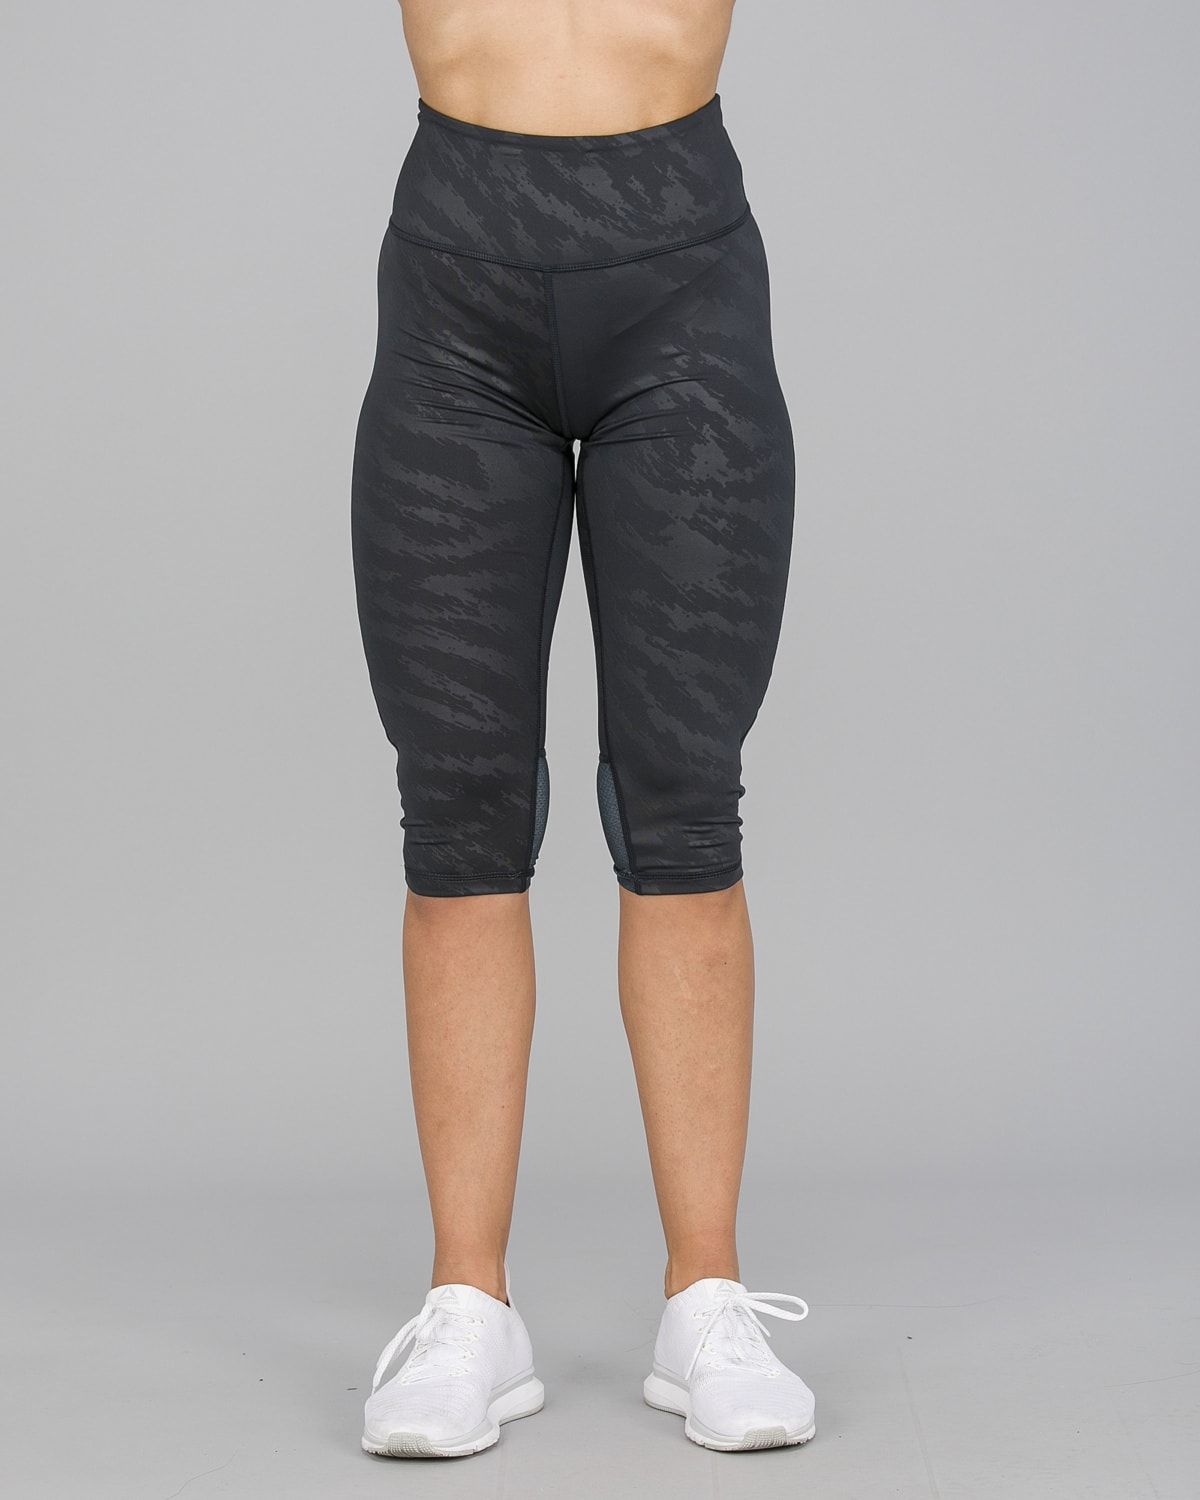 Workout Empire – Elevate 3:4 Leggings – Svart6